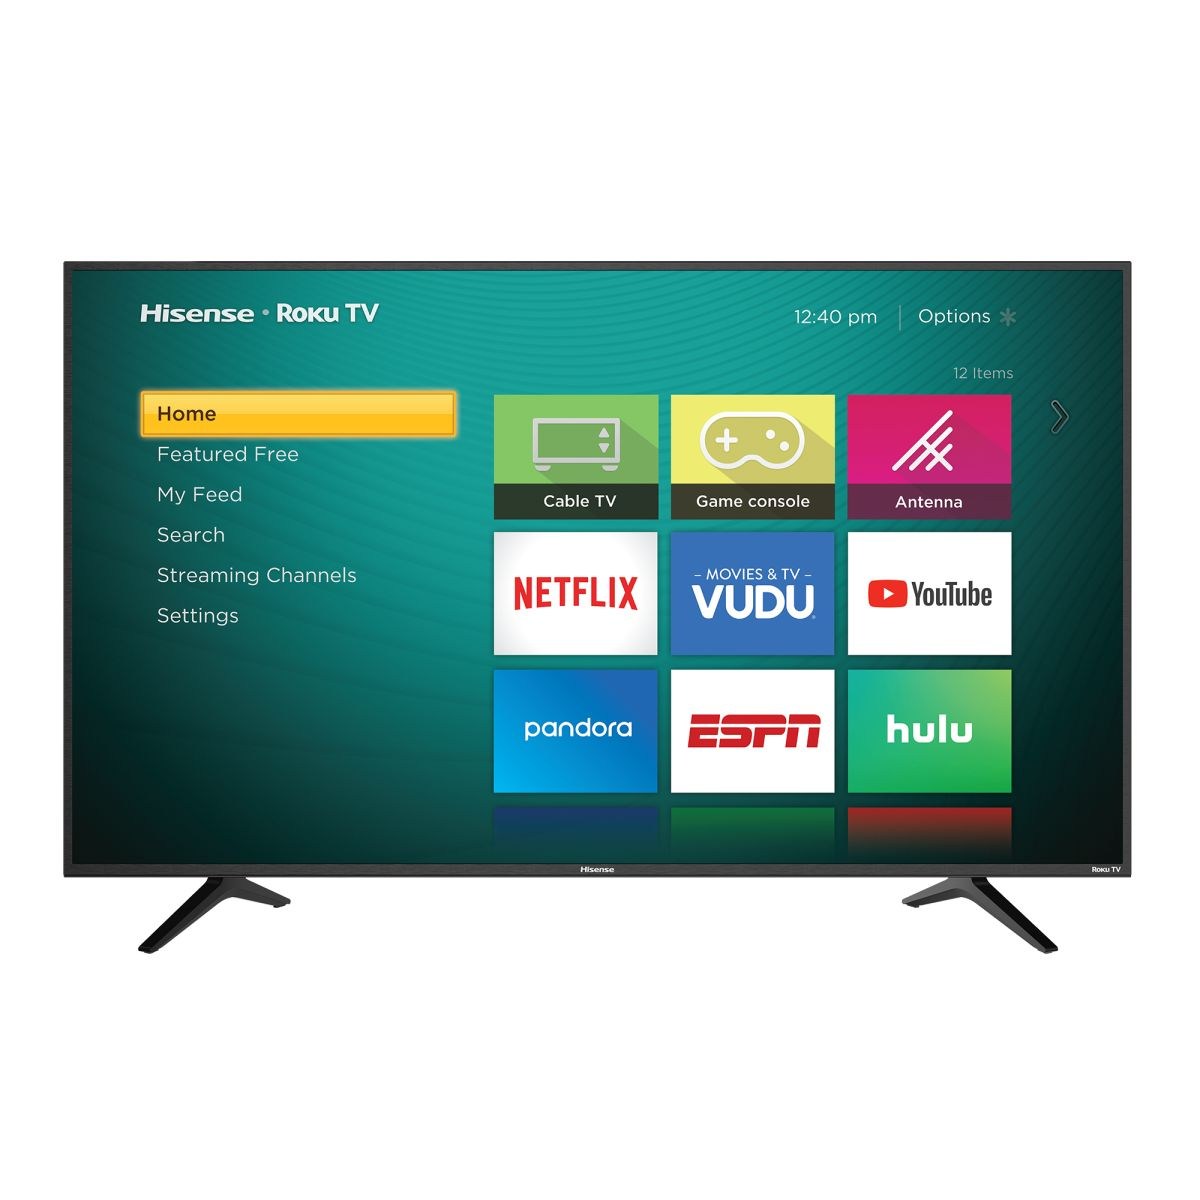 f24e4155850 The best cheap 4K TV deals and sale prices in the US - May 2019 ...